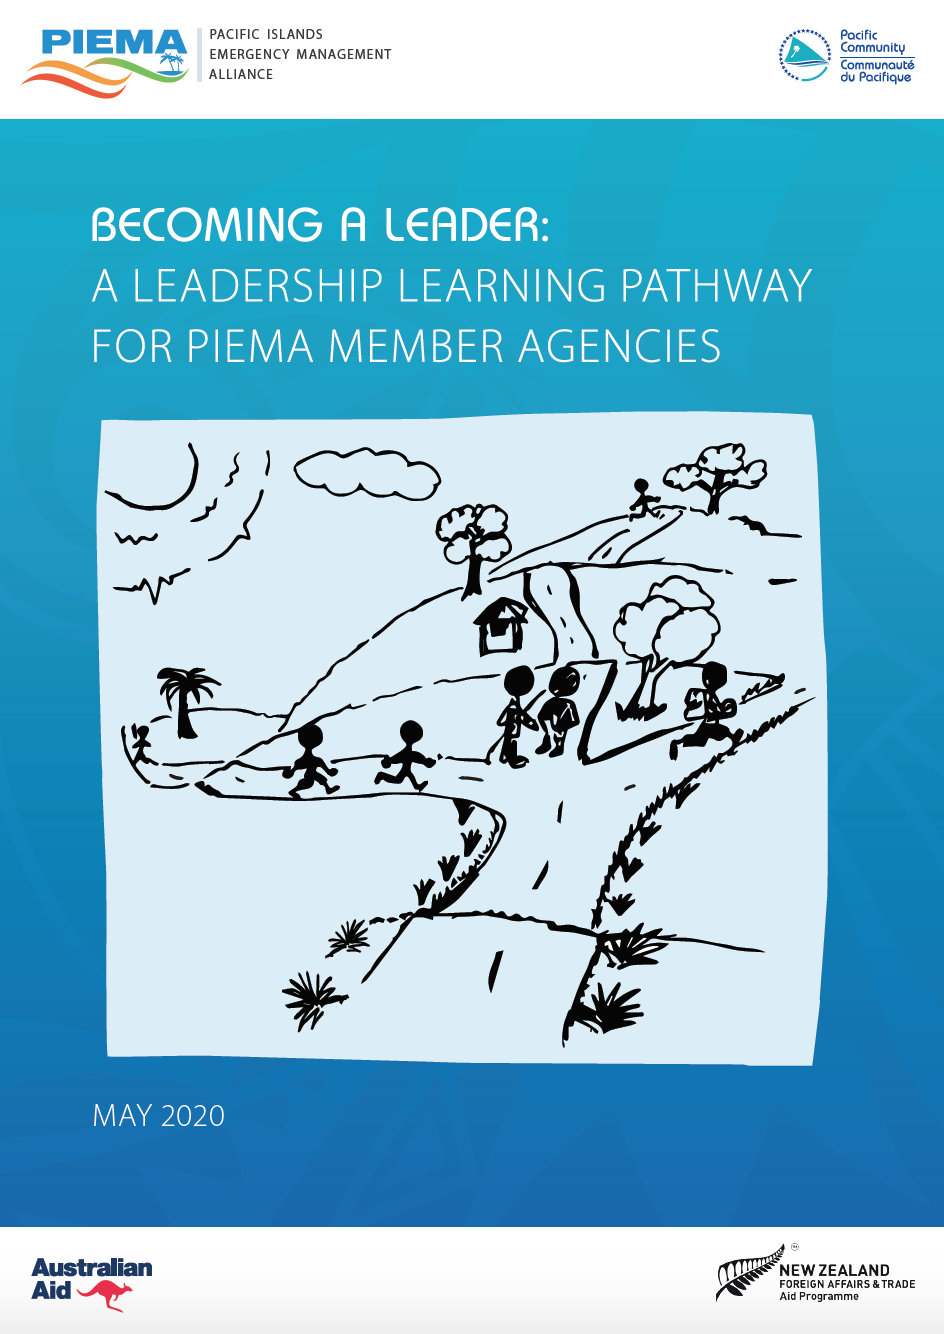 Becoming a Leader: A leadership learning pathway for PIEMA member agencies